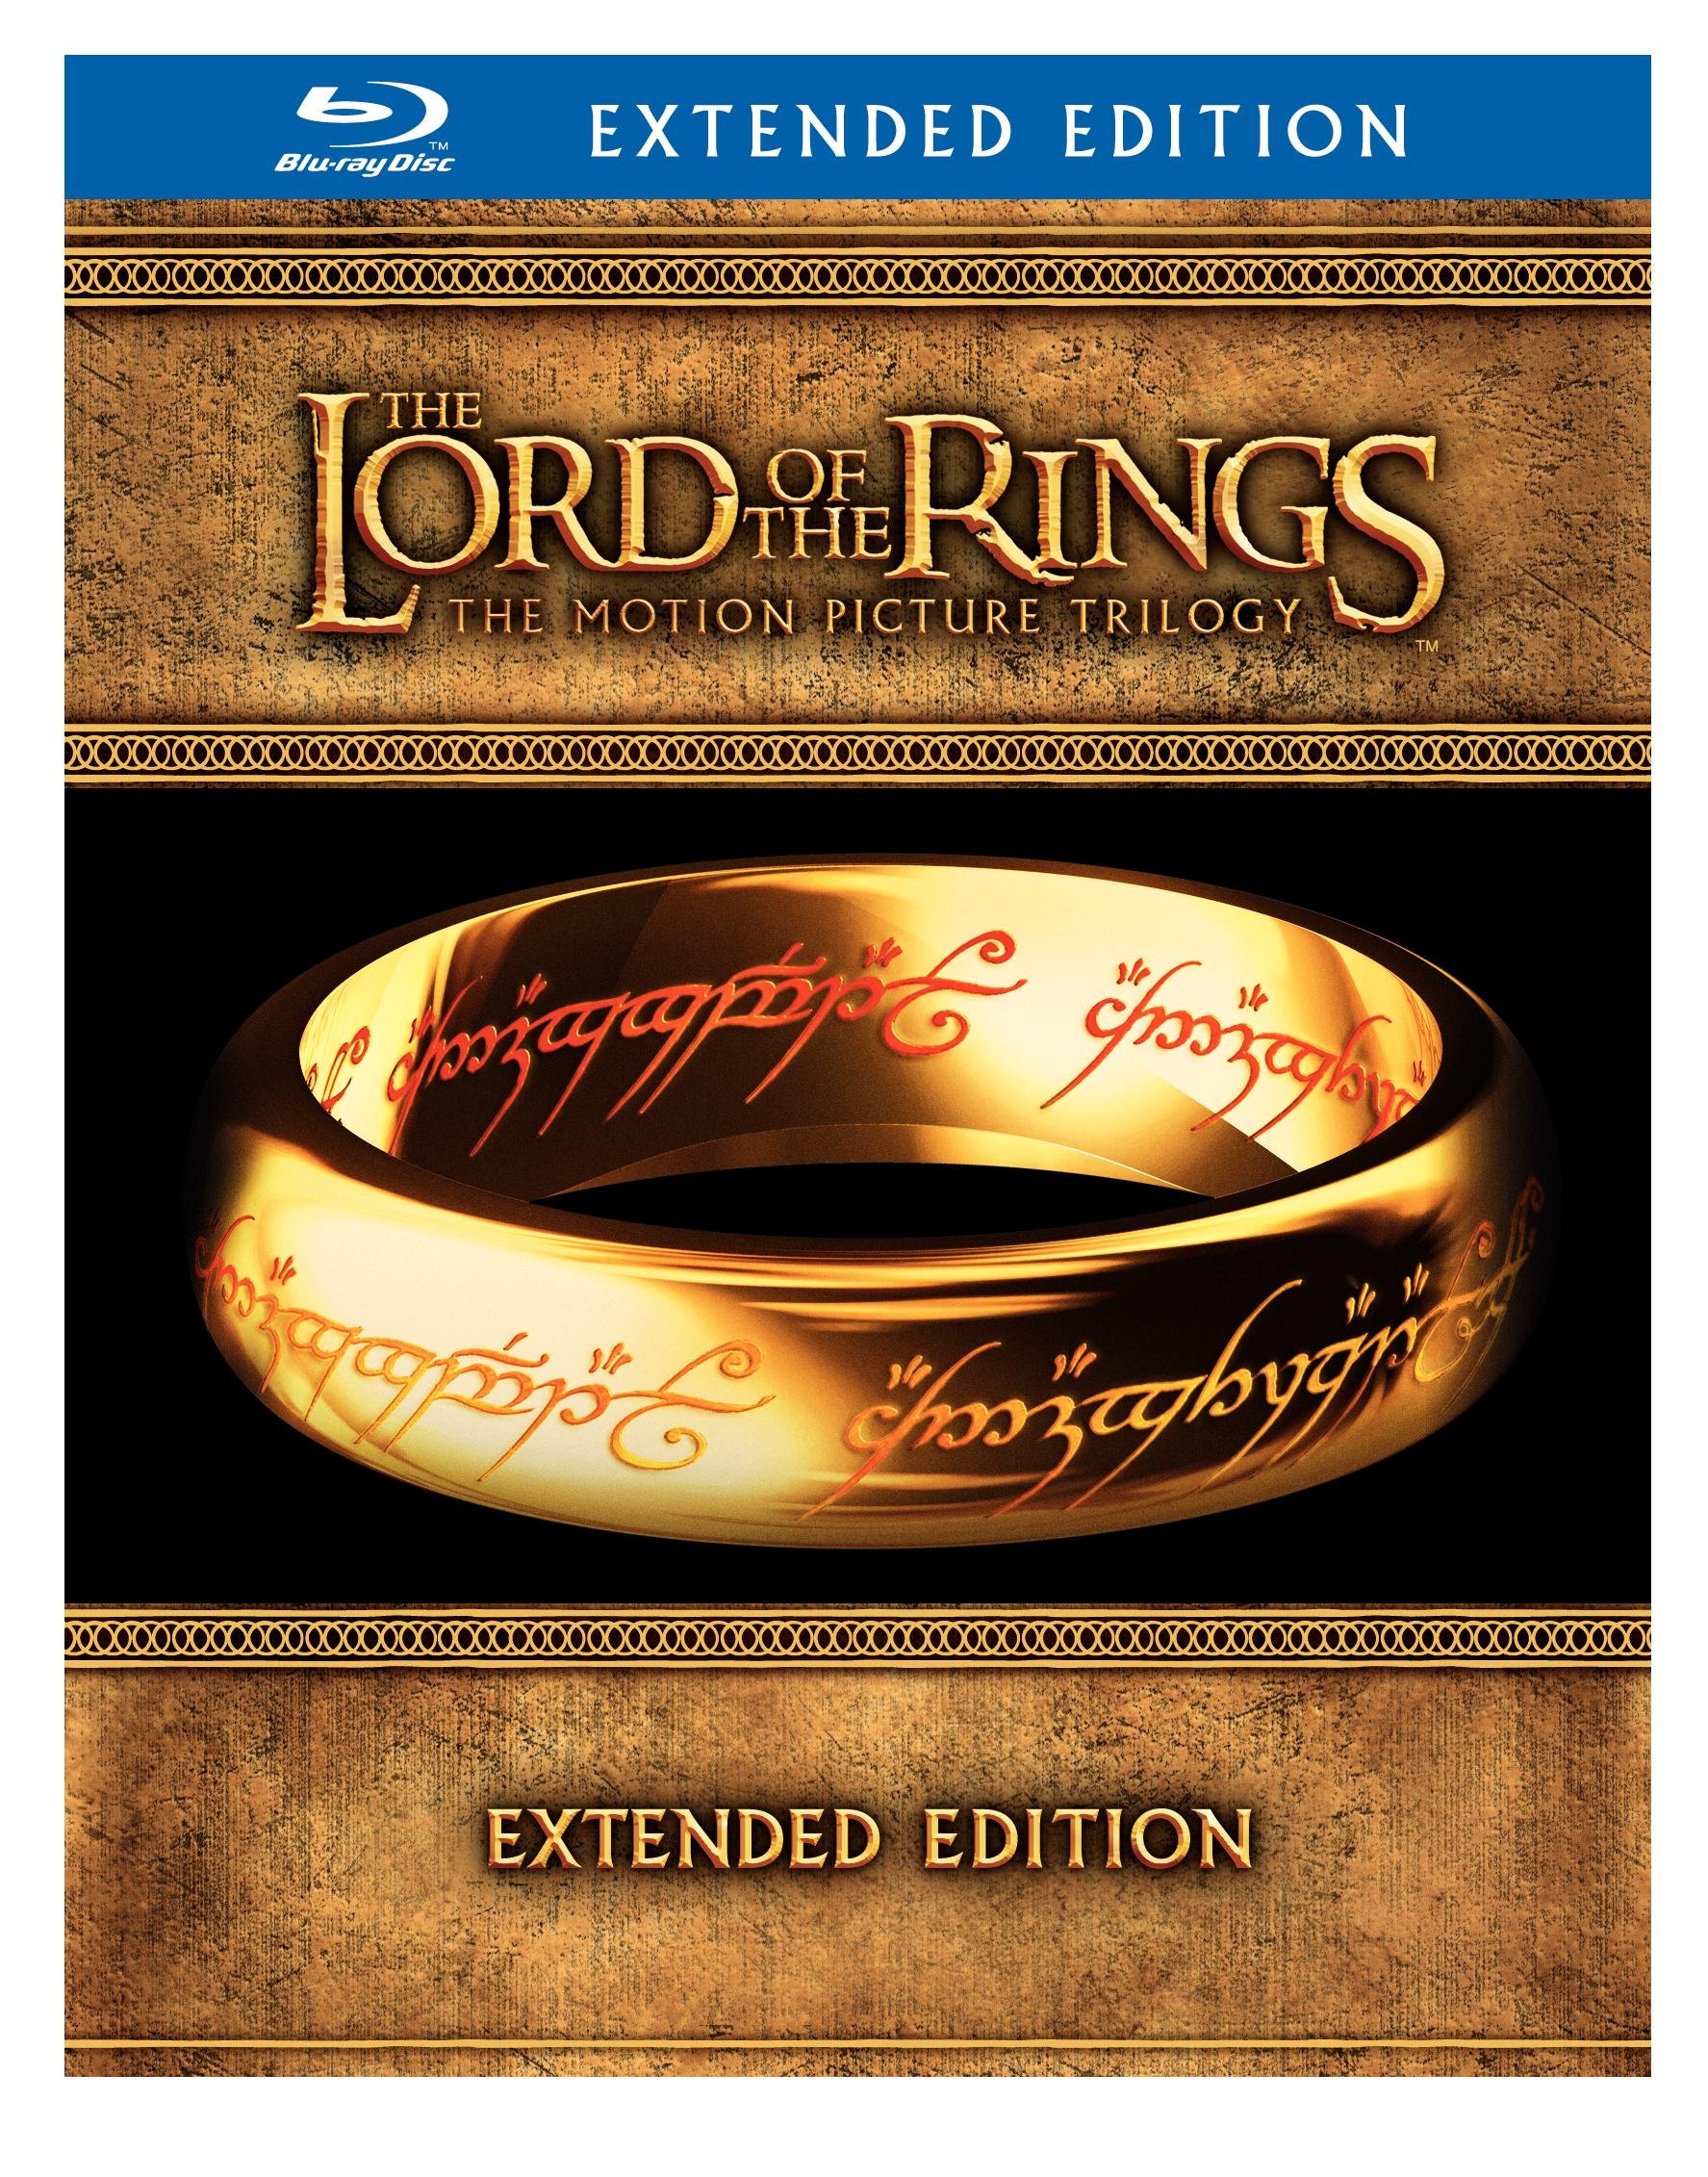 The Lord of the Rings: The Motion Picture Trilogy (The Fellowship of the Ring / The Two Towers / The Return of the King Extended Editions) [Blu-ray] by Warner Bros.